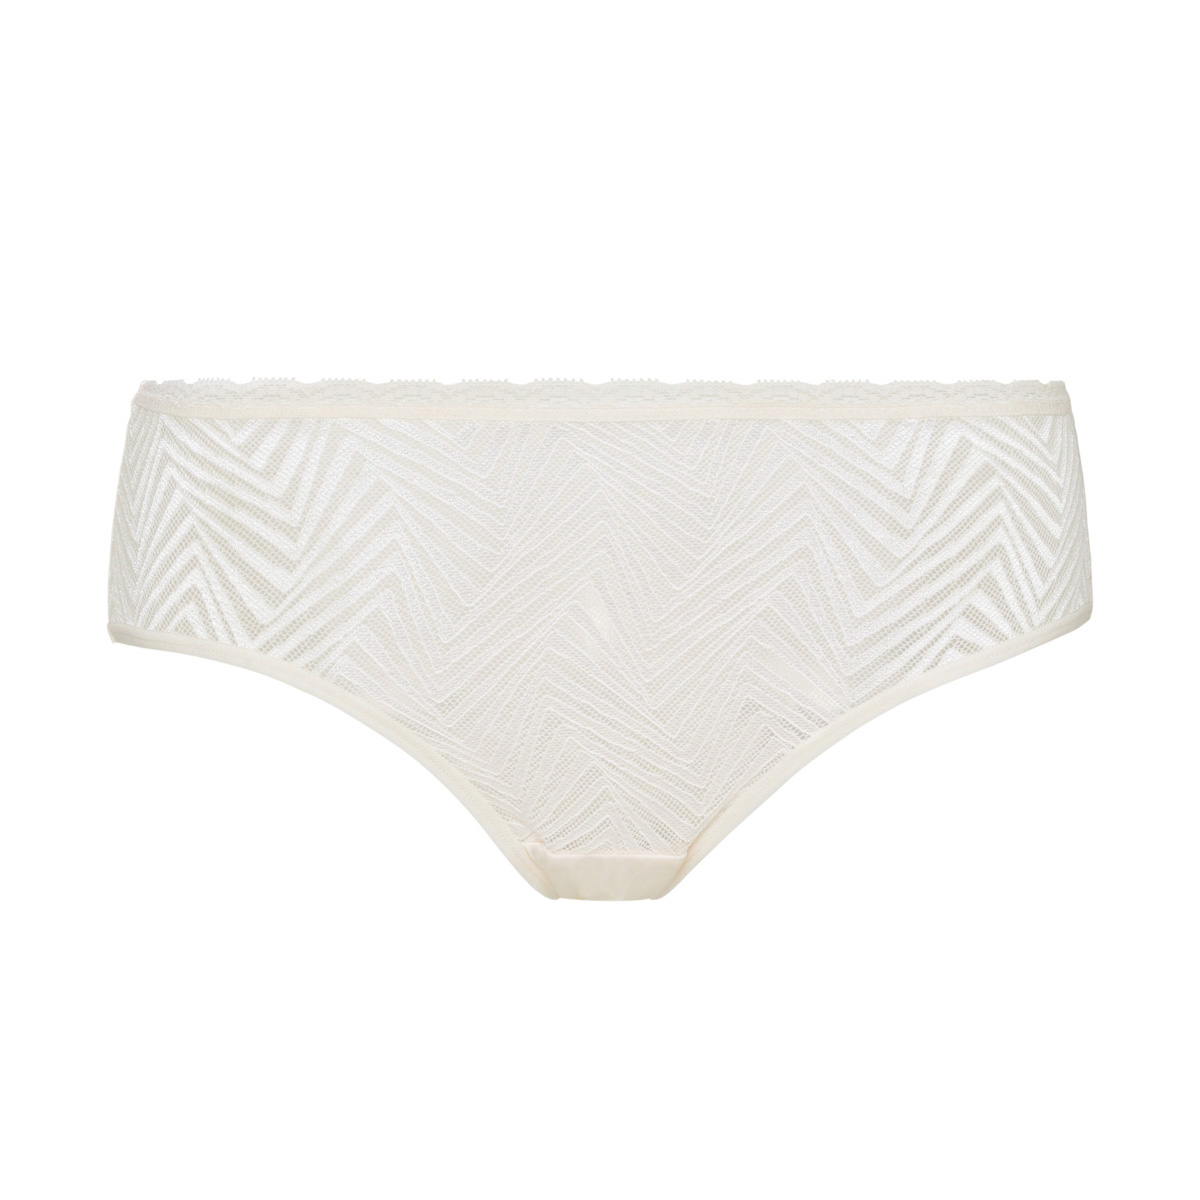 Culotte midi dentelle ivoire Ideal Posture, , PLAYTEX